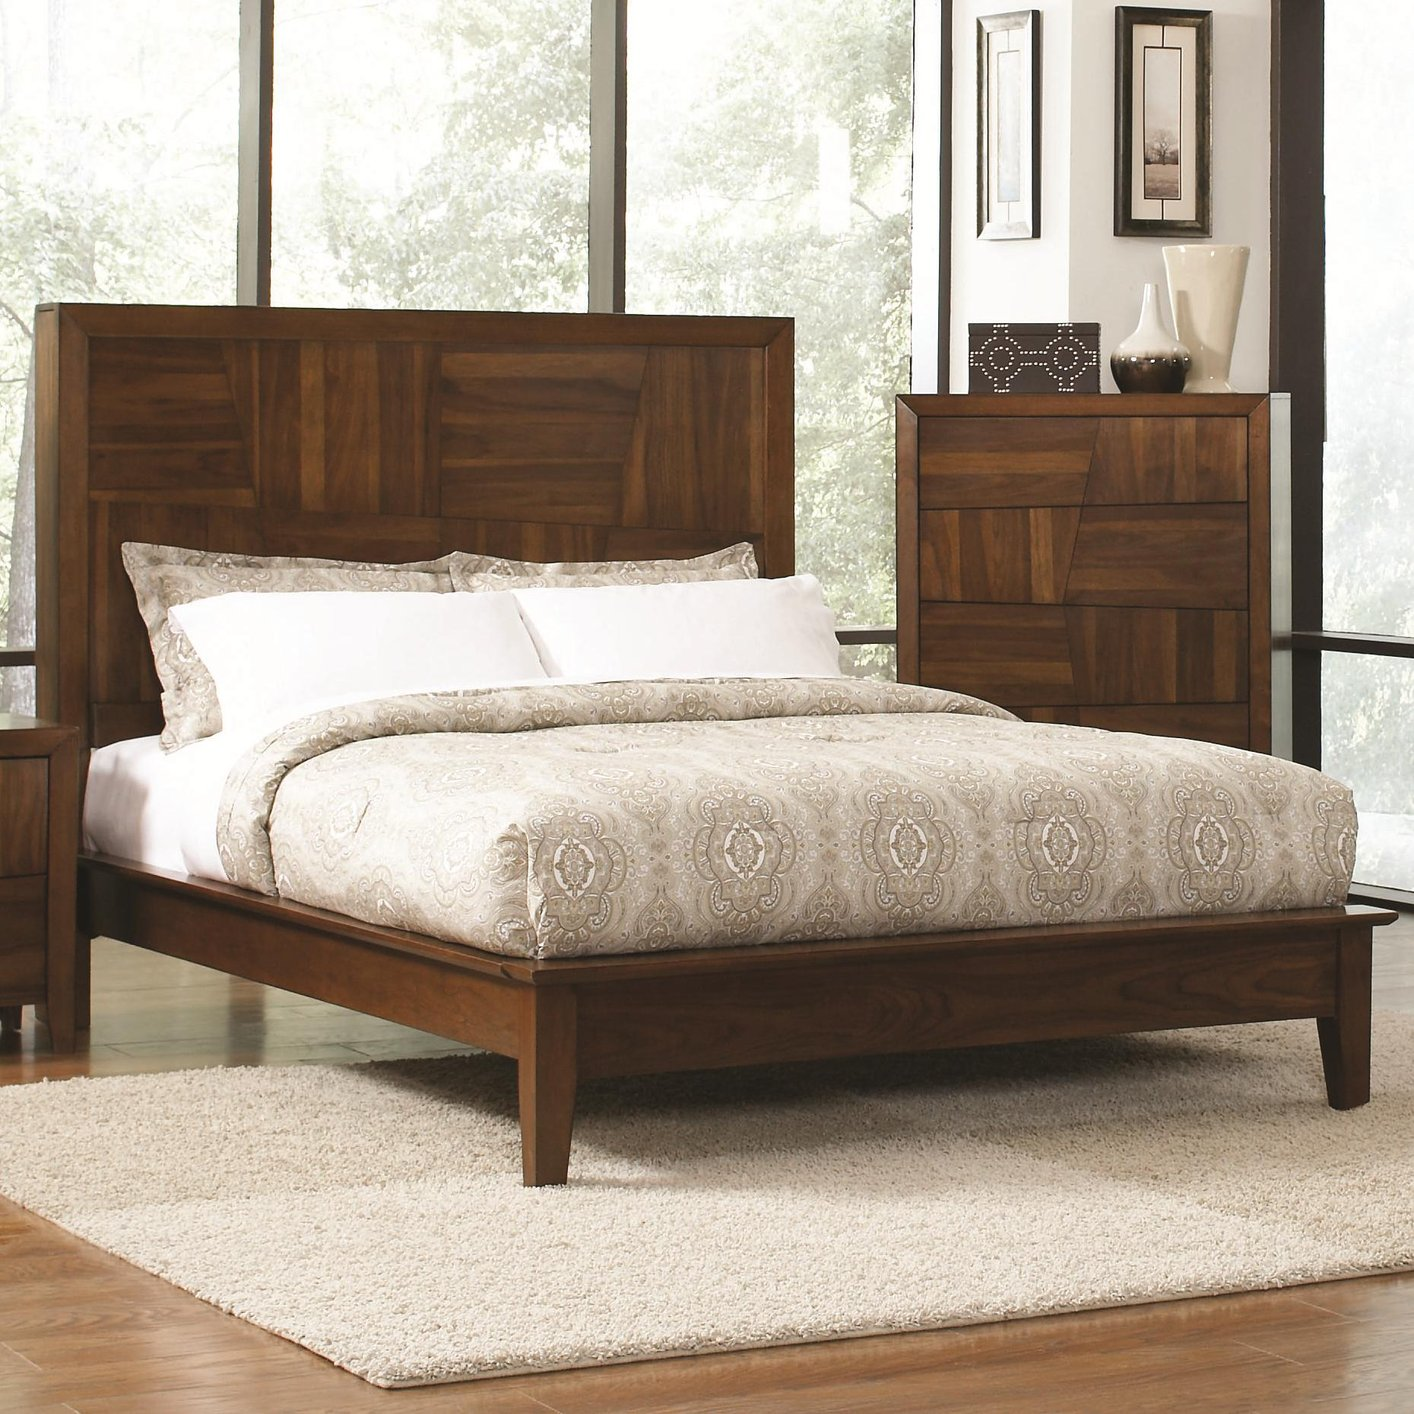 Brown wood eastern king size bed steal a sofa furniture for Bedroom furniture 90036